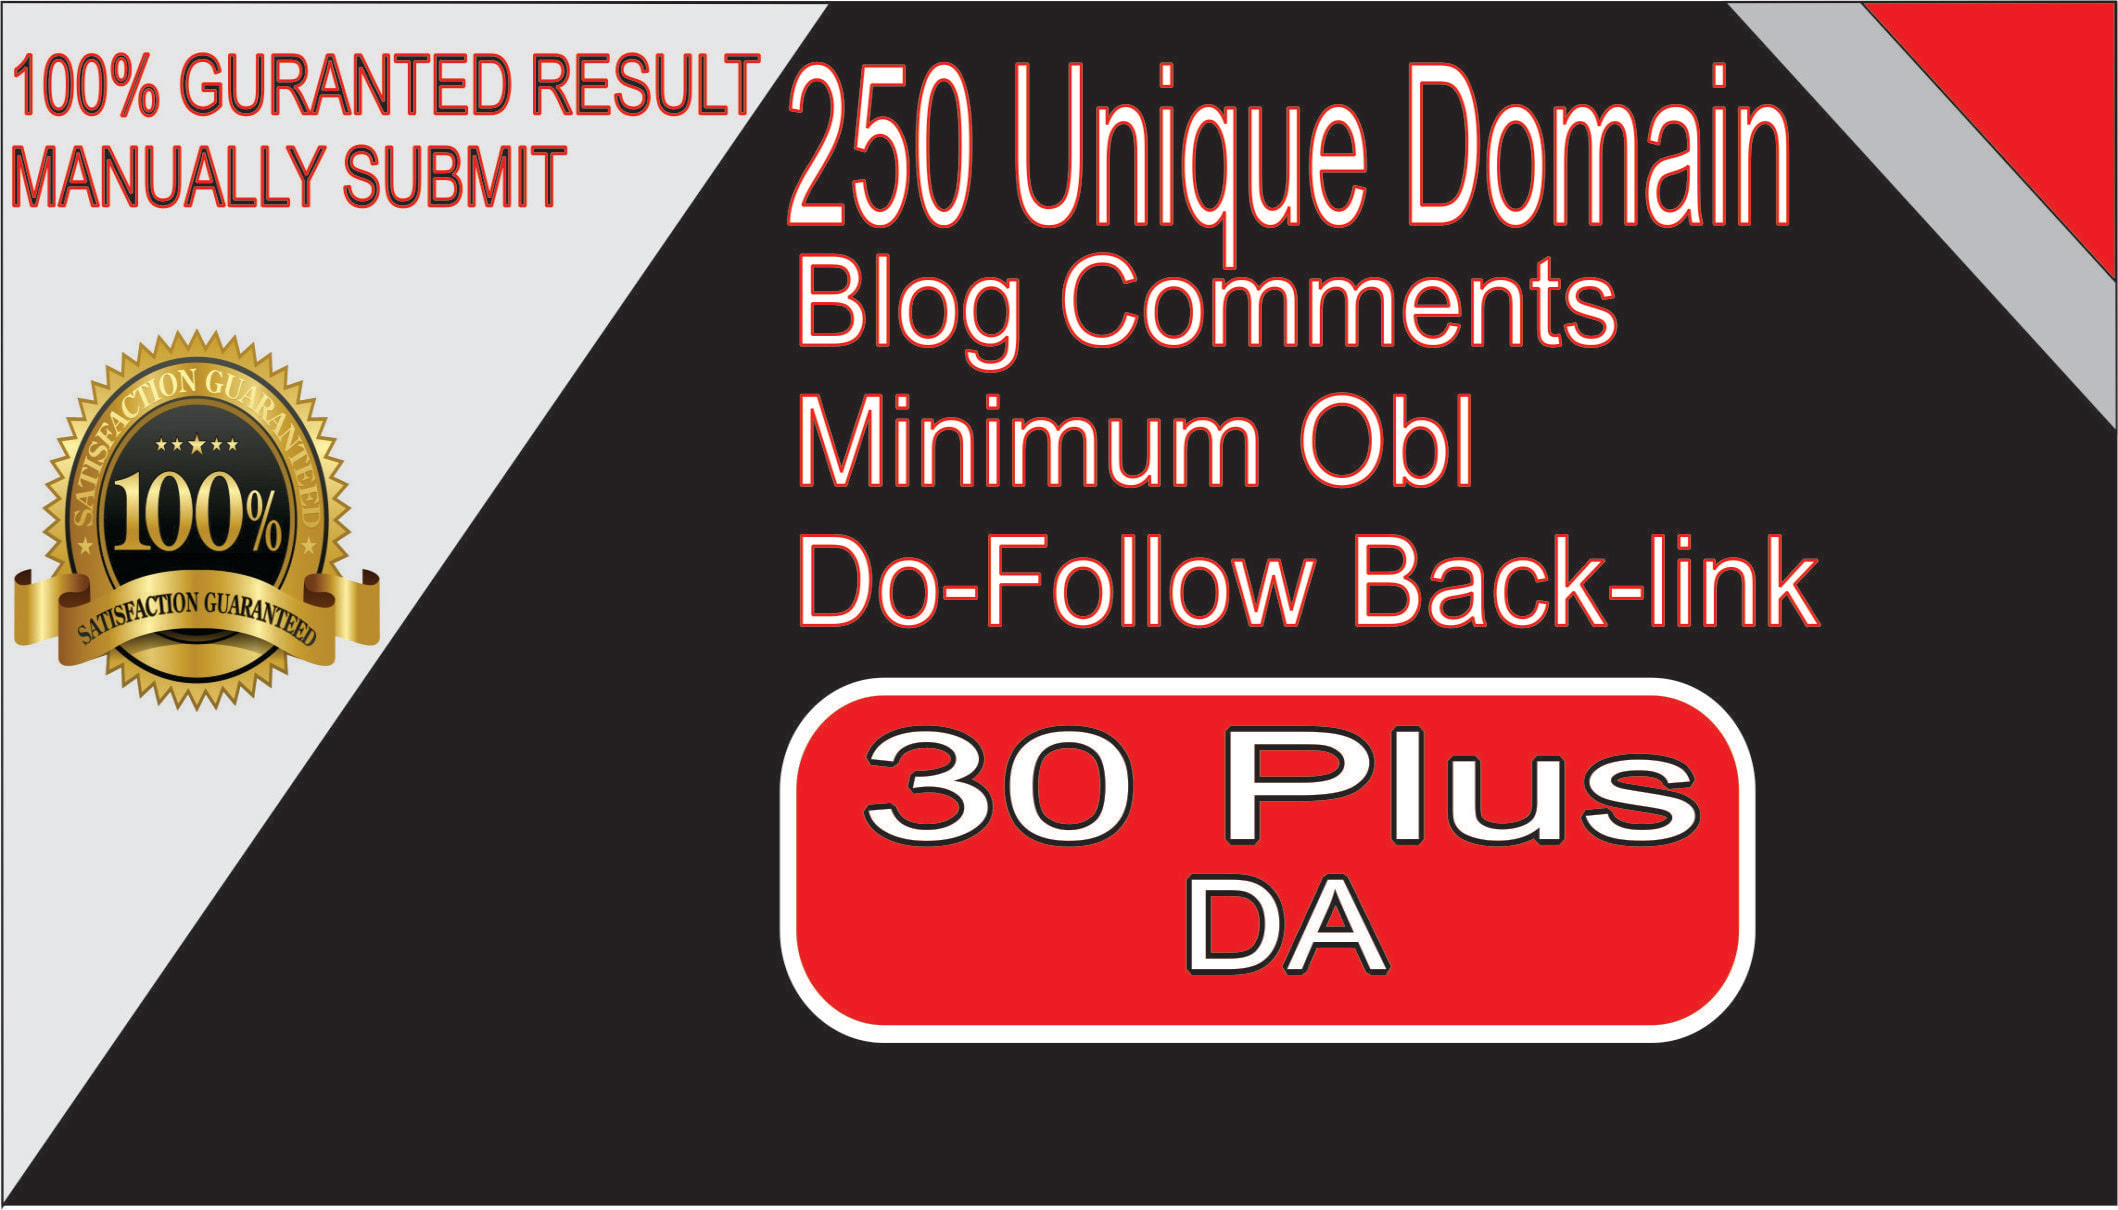 250 unique low obl blog comment dofollow backlinks on da 30